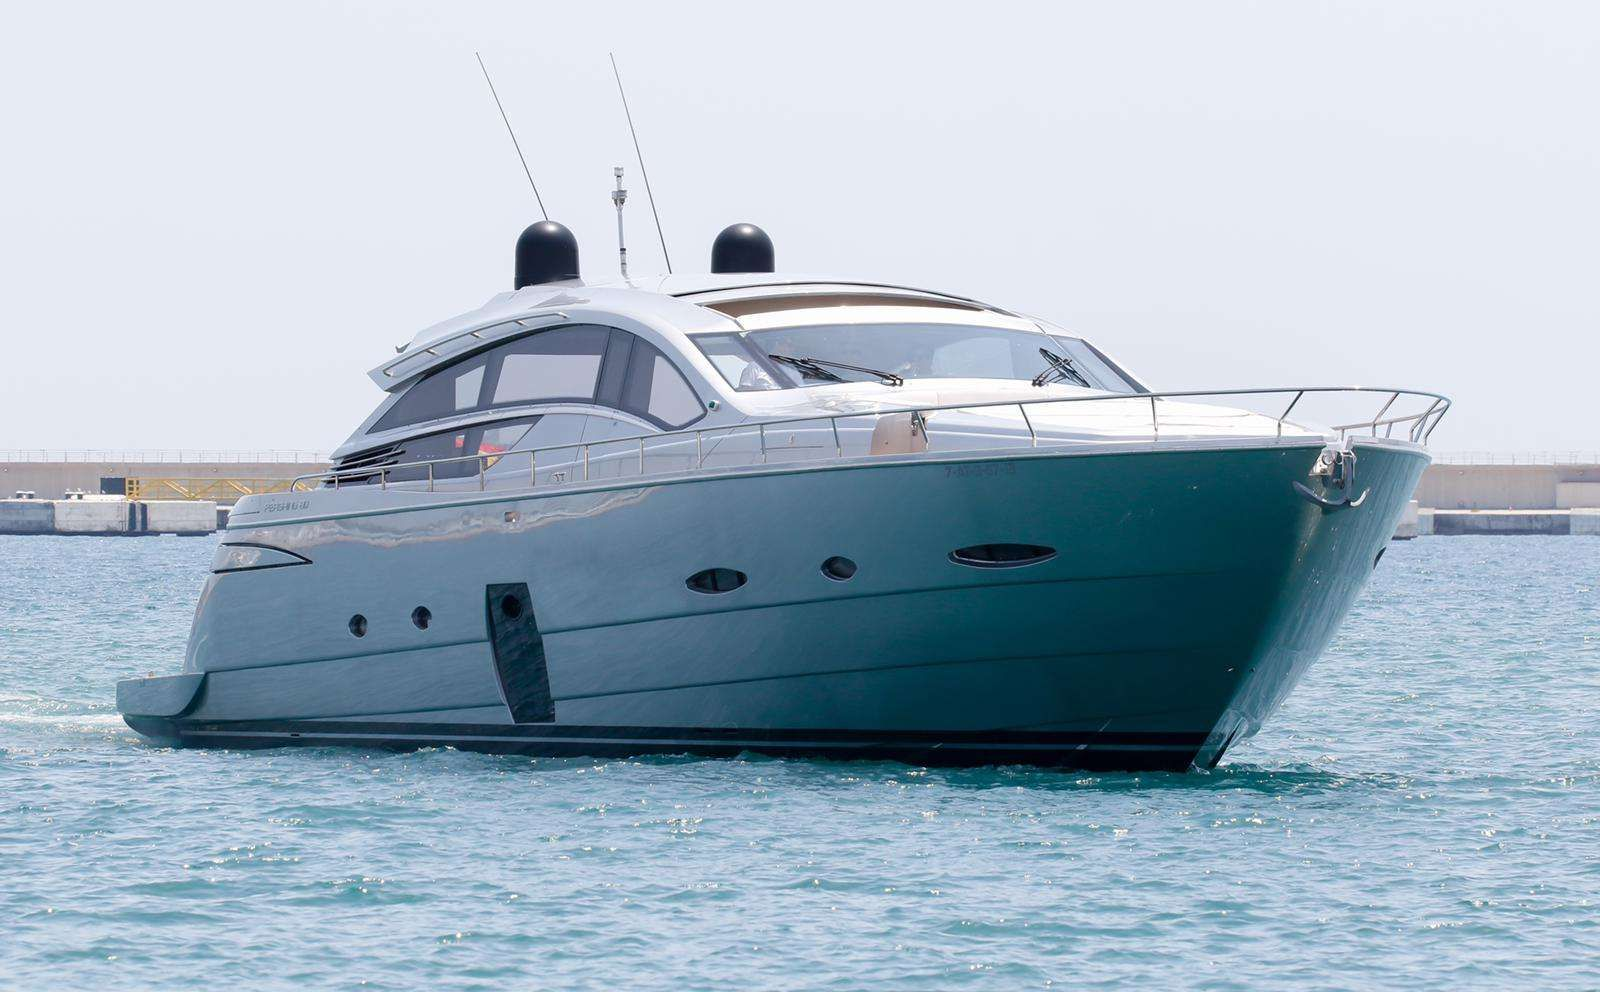 HALLEY Yacht Charter - Ritzy Charters